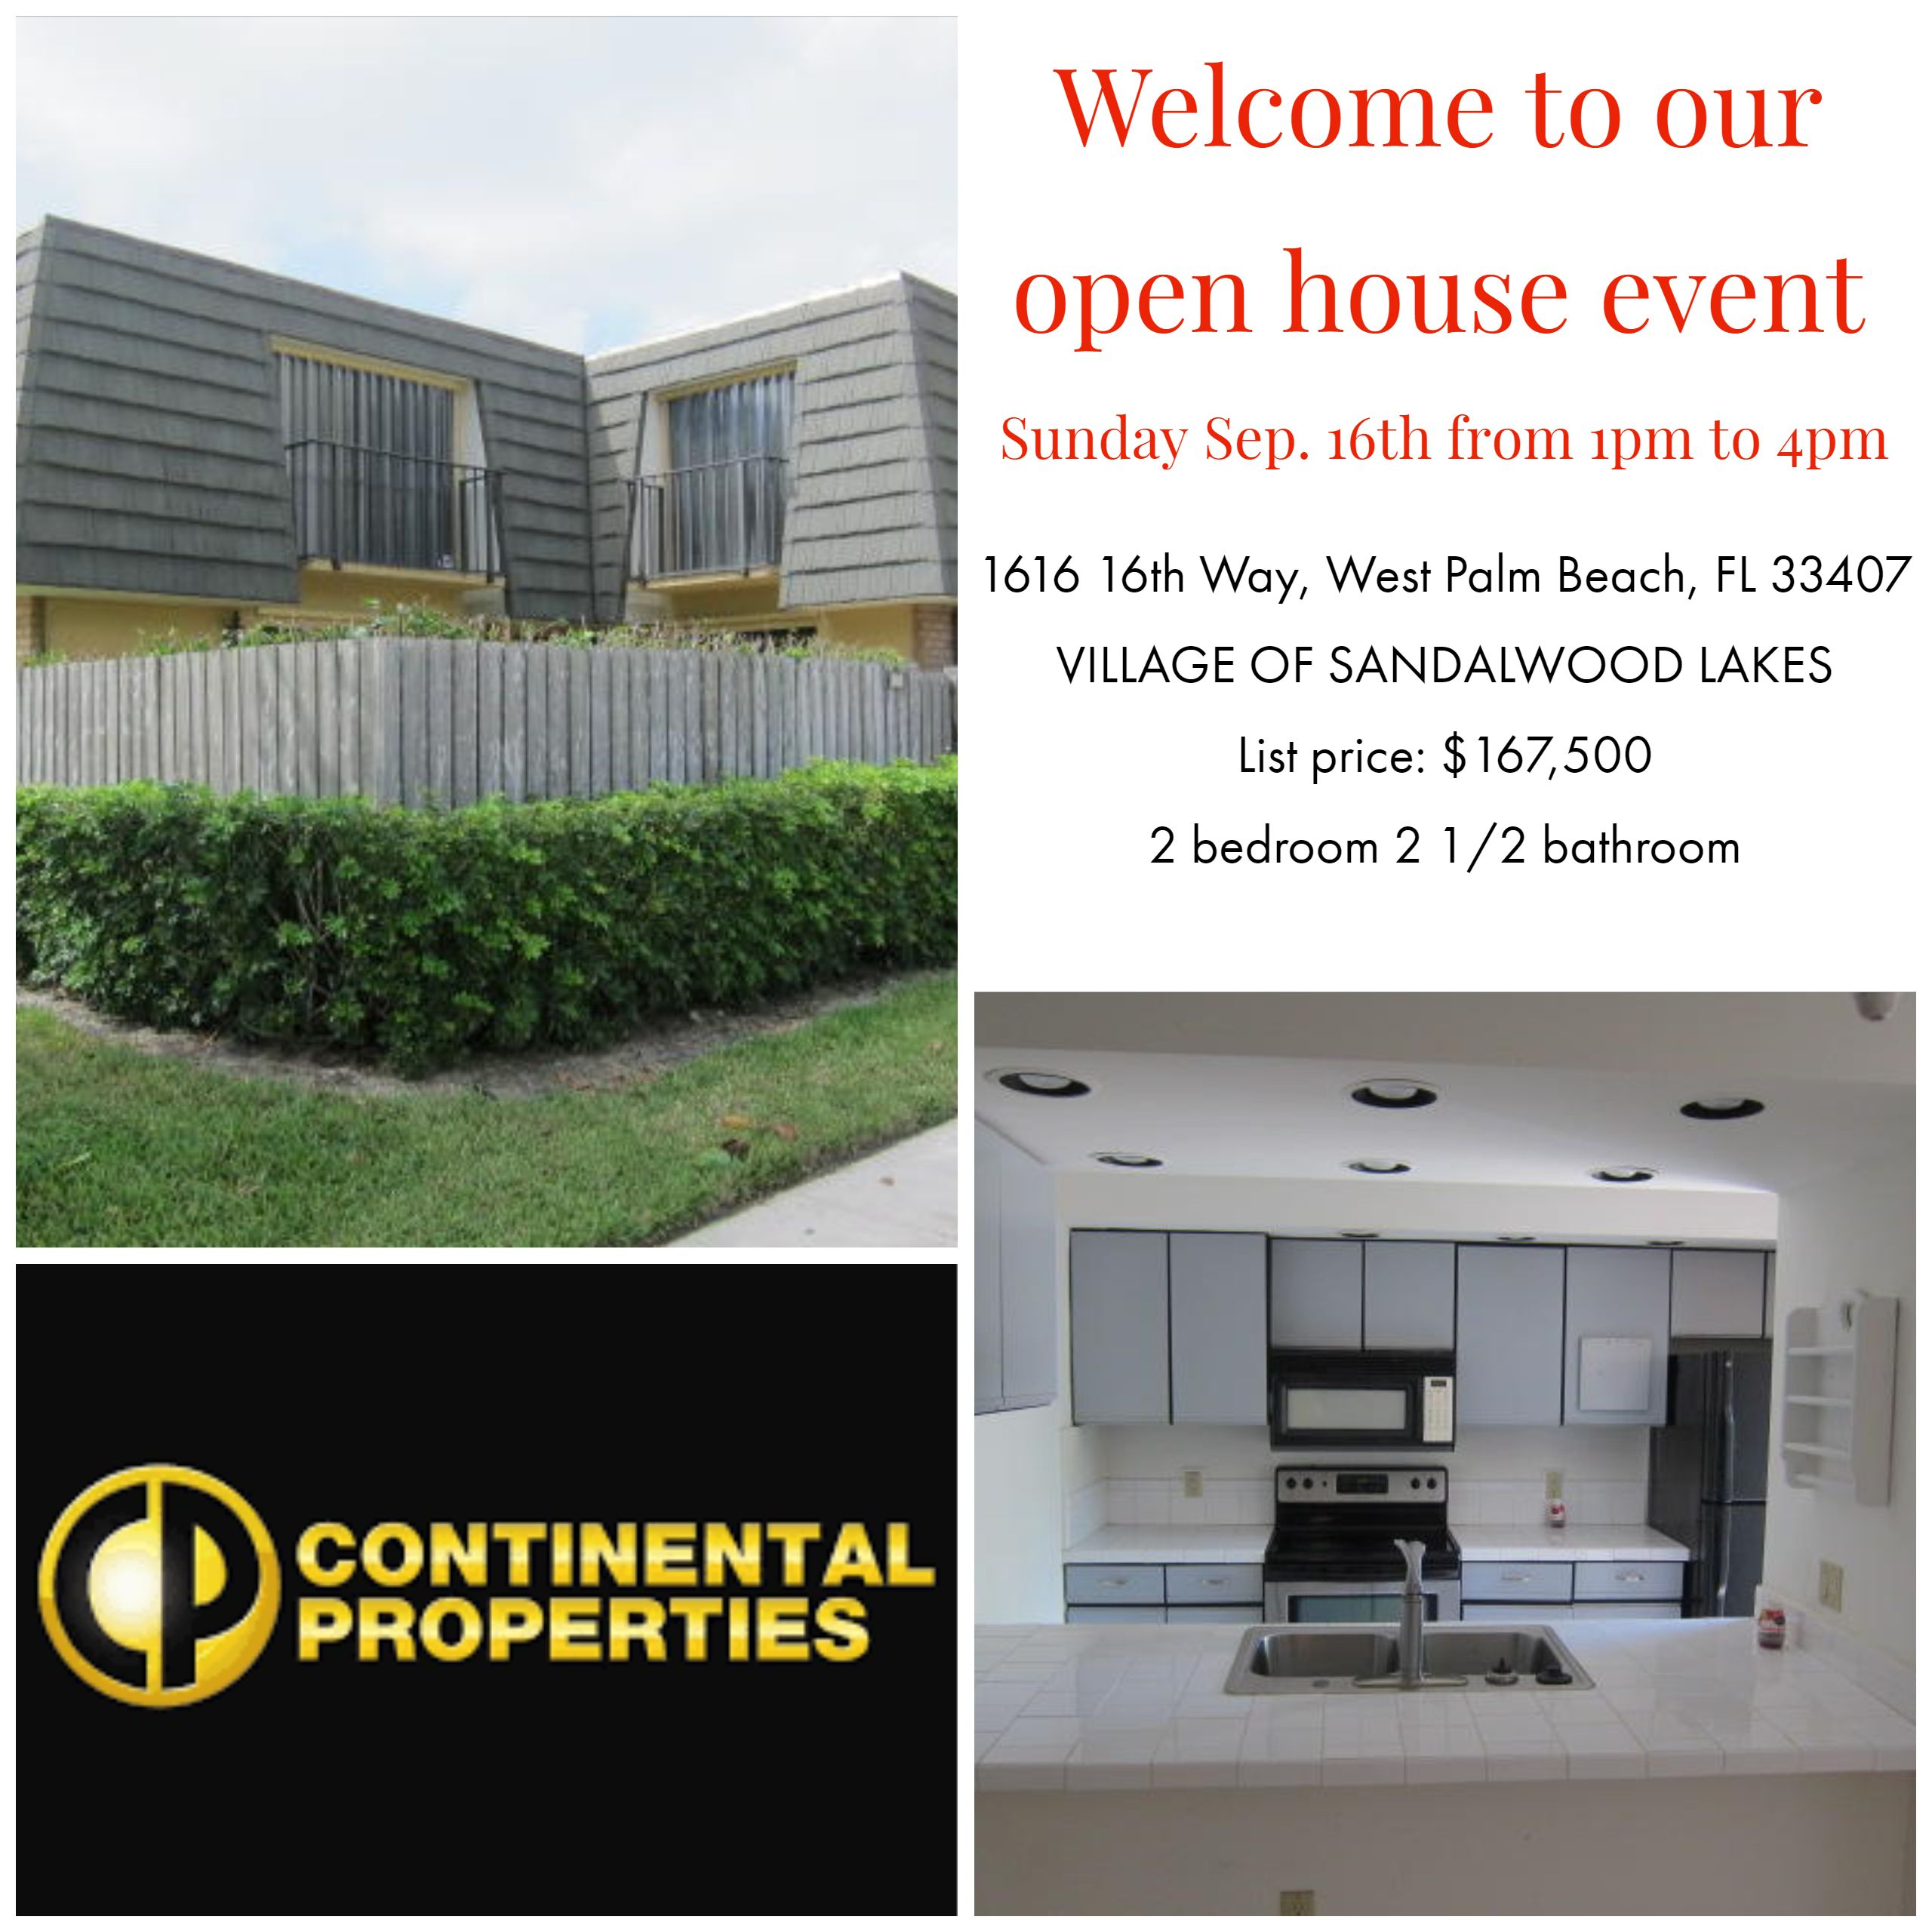 Open House Invitation Courtesy Of Continental Properties Inc